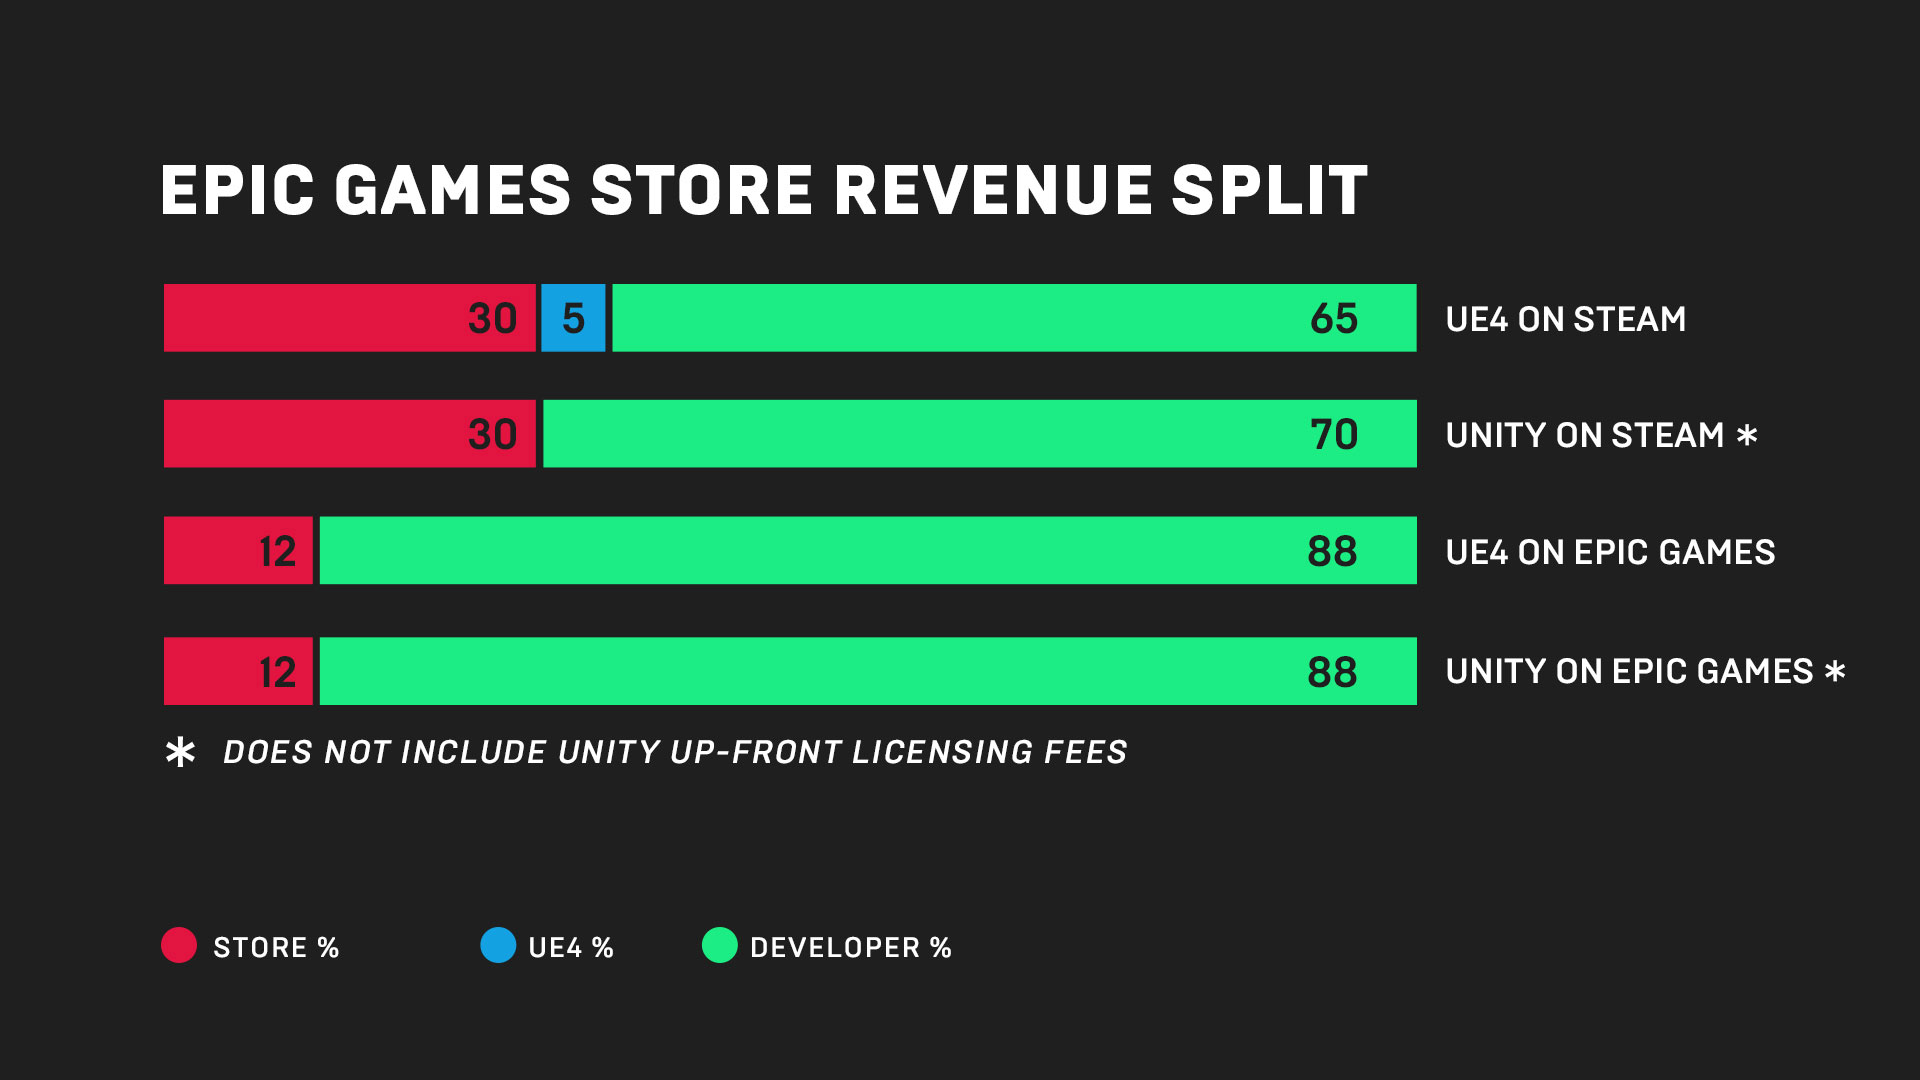 The Epic Games Store is announced with a massive 88